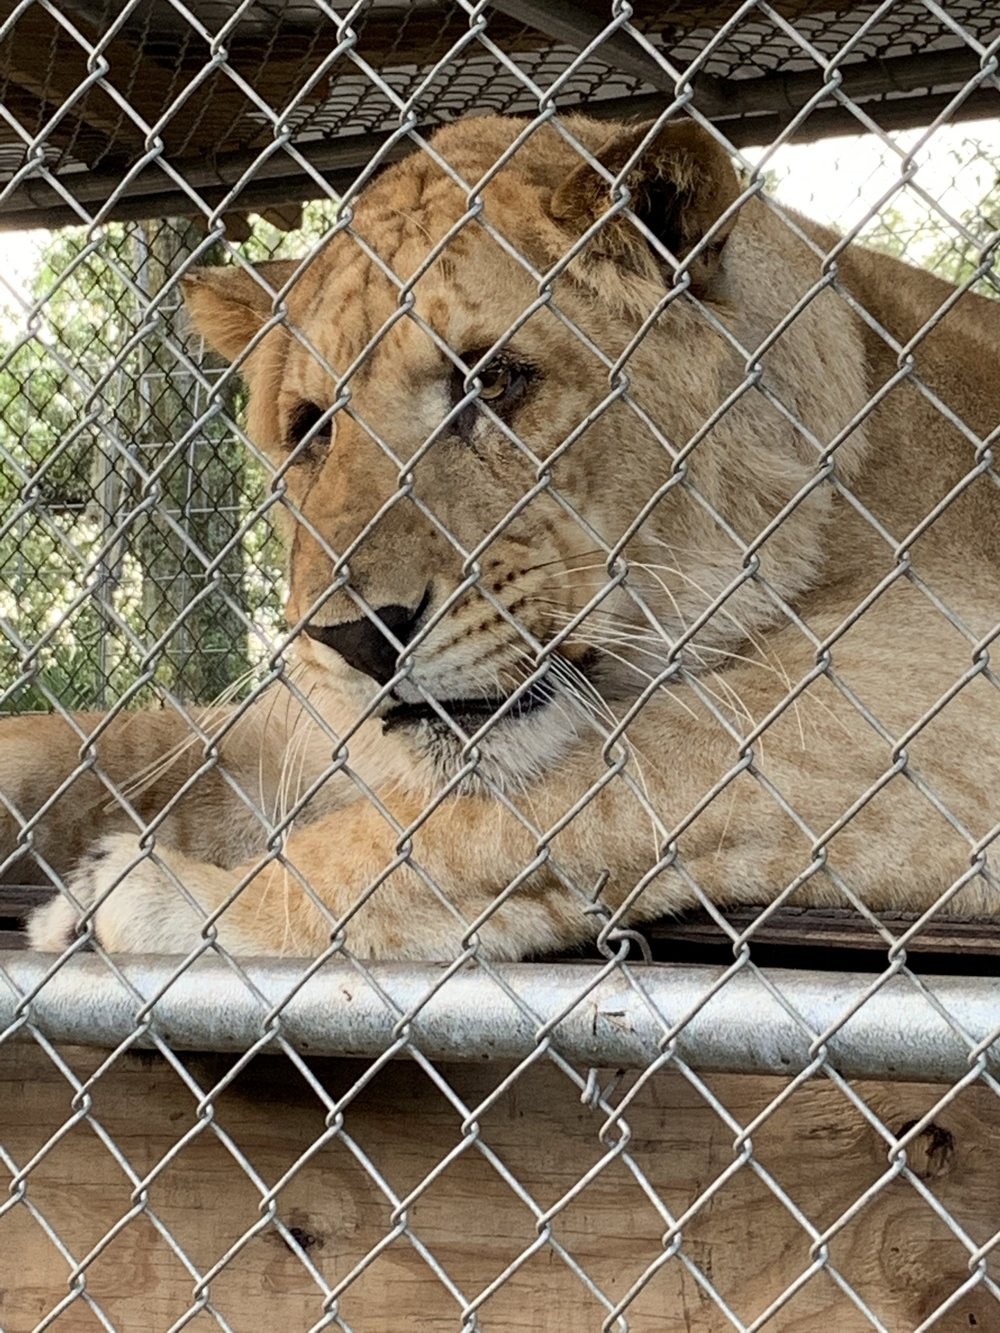 """Chimera the Liliger! What a loverboy! At not quite 2 years old, his energy was all about play and curiousity! Weighing in at almost 400 pounds he eats between 18 -20 lbs of meat a day! He's not done growing yet! He loved his pool and his toy tire! He would make up his own chase-game, with them. I believe his lessons were all about making time to play and not letting the """"walls we put up,"""" keep us from enjoying life! Not taking ourselves to serious and making time for play everyday. Letting go of anxiety and worry, make your own fun, create new adventures and new experiences even in the everyday little things. His Reiki energy was very happy, fun, and light! I loved his big ole' paws, too! #Liligerlessons #animalreikiteacher"""